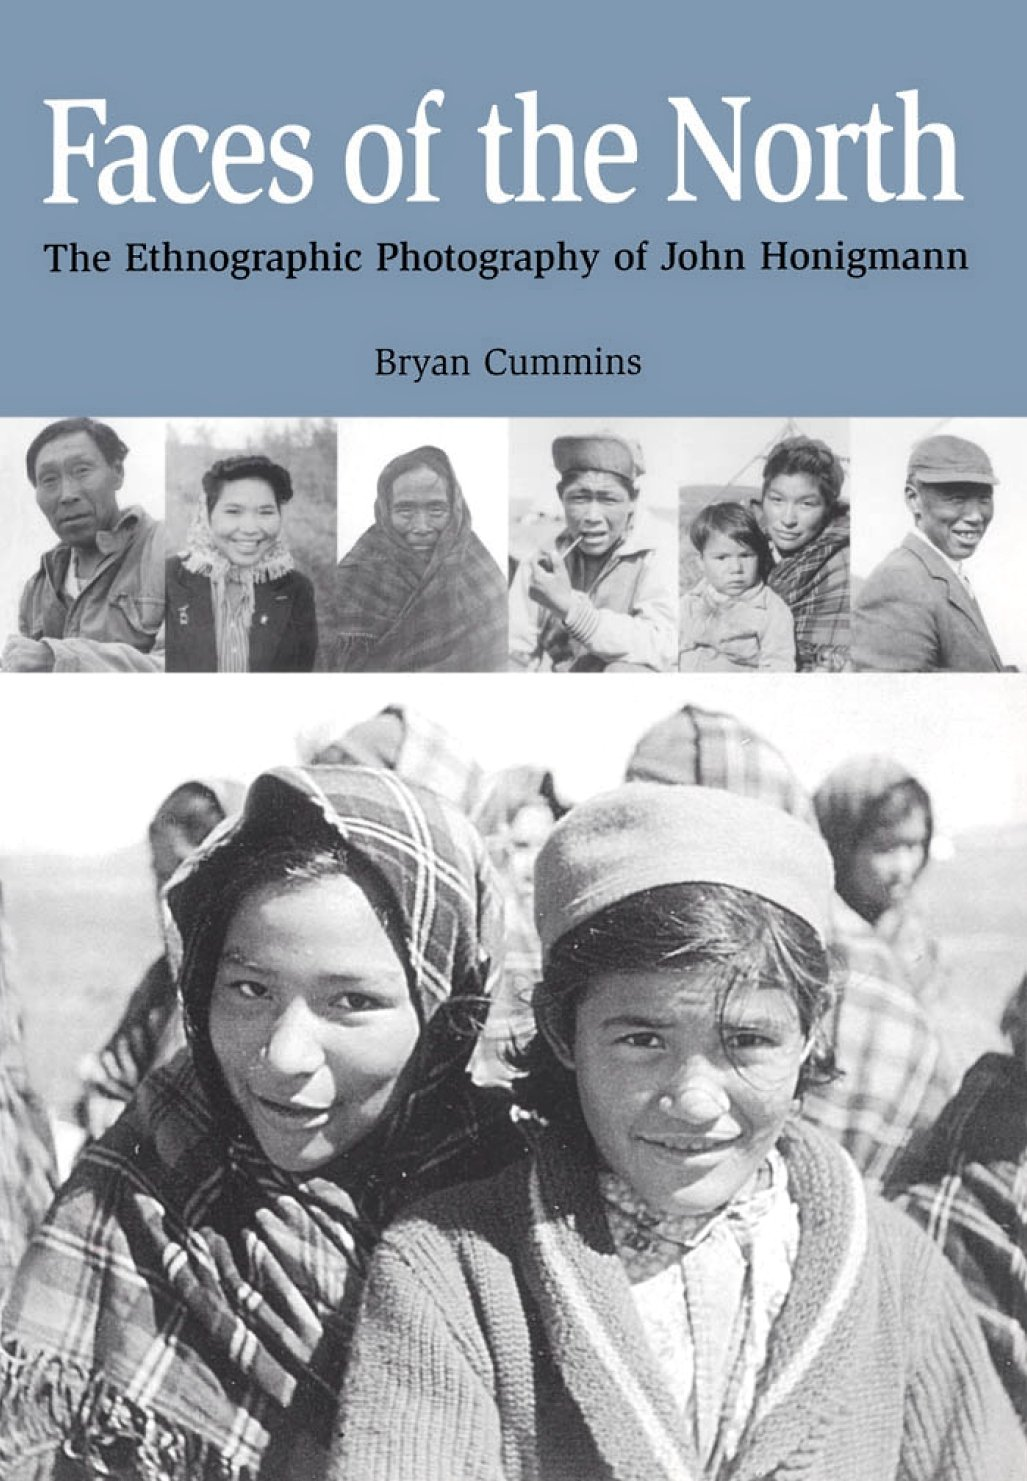 Download Faces of the North: The Ethnographic Photography of John Honigmann PDF